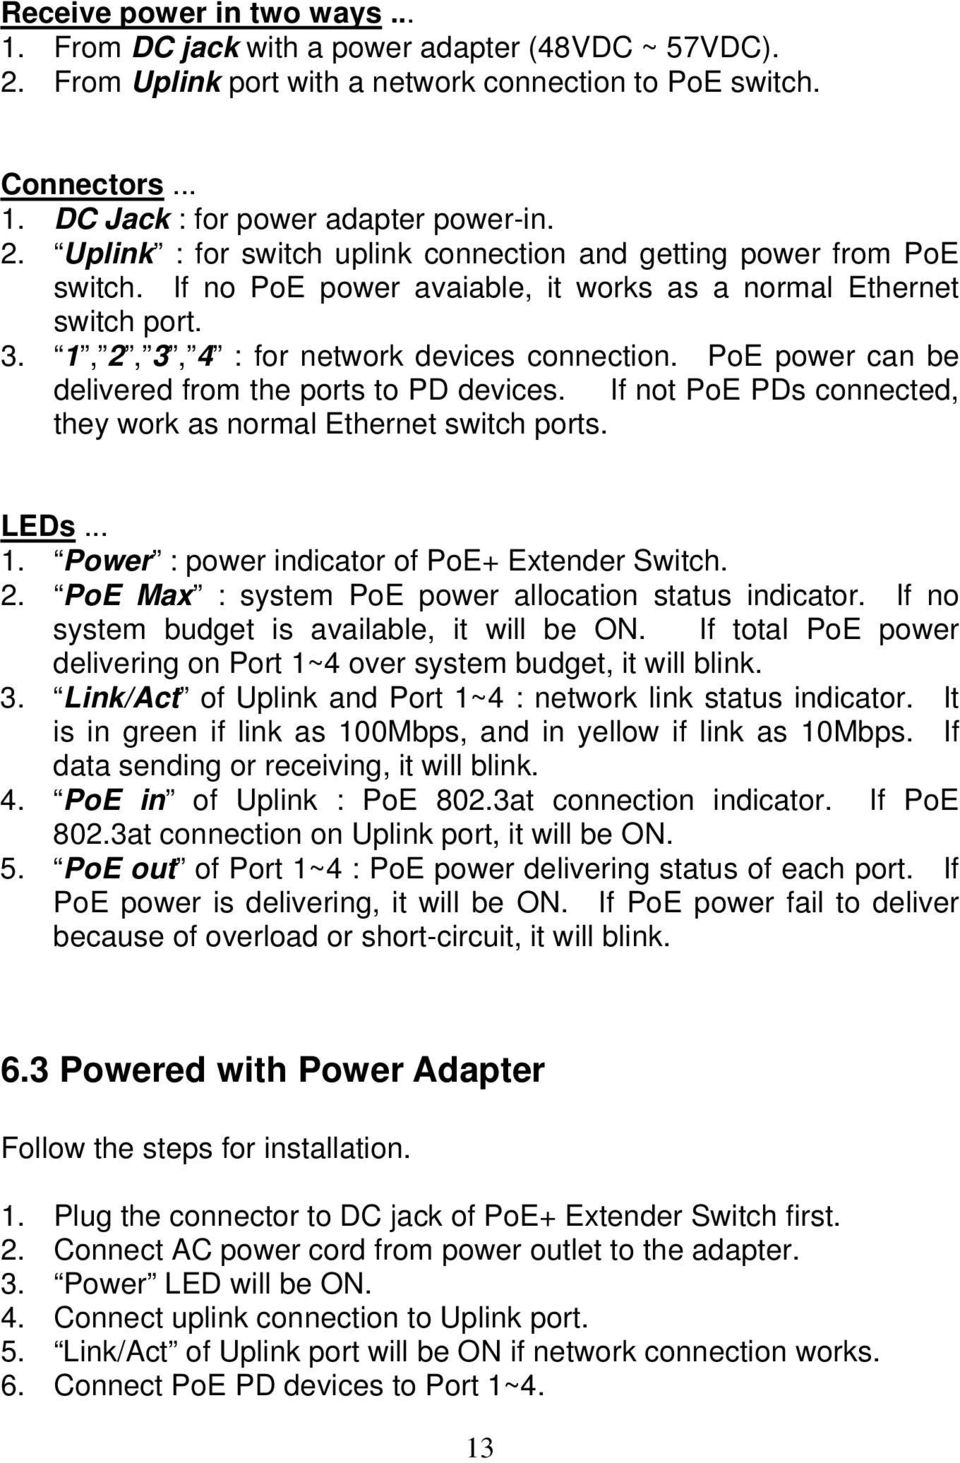 PoE power can be delivered from the ports to PD devices. If not PoE PDs connected, they work as normal Ethernet switch ports. LEDs... 1. Power : power indicator of PoE+ Extender Switch. 2.